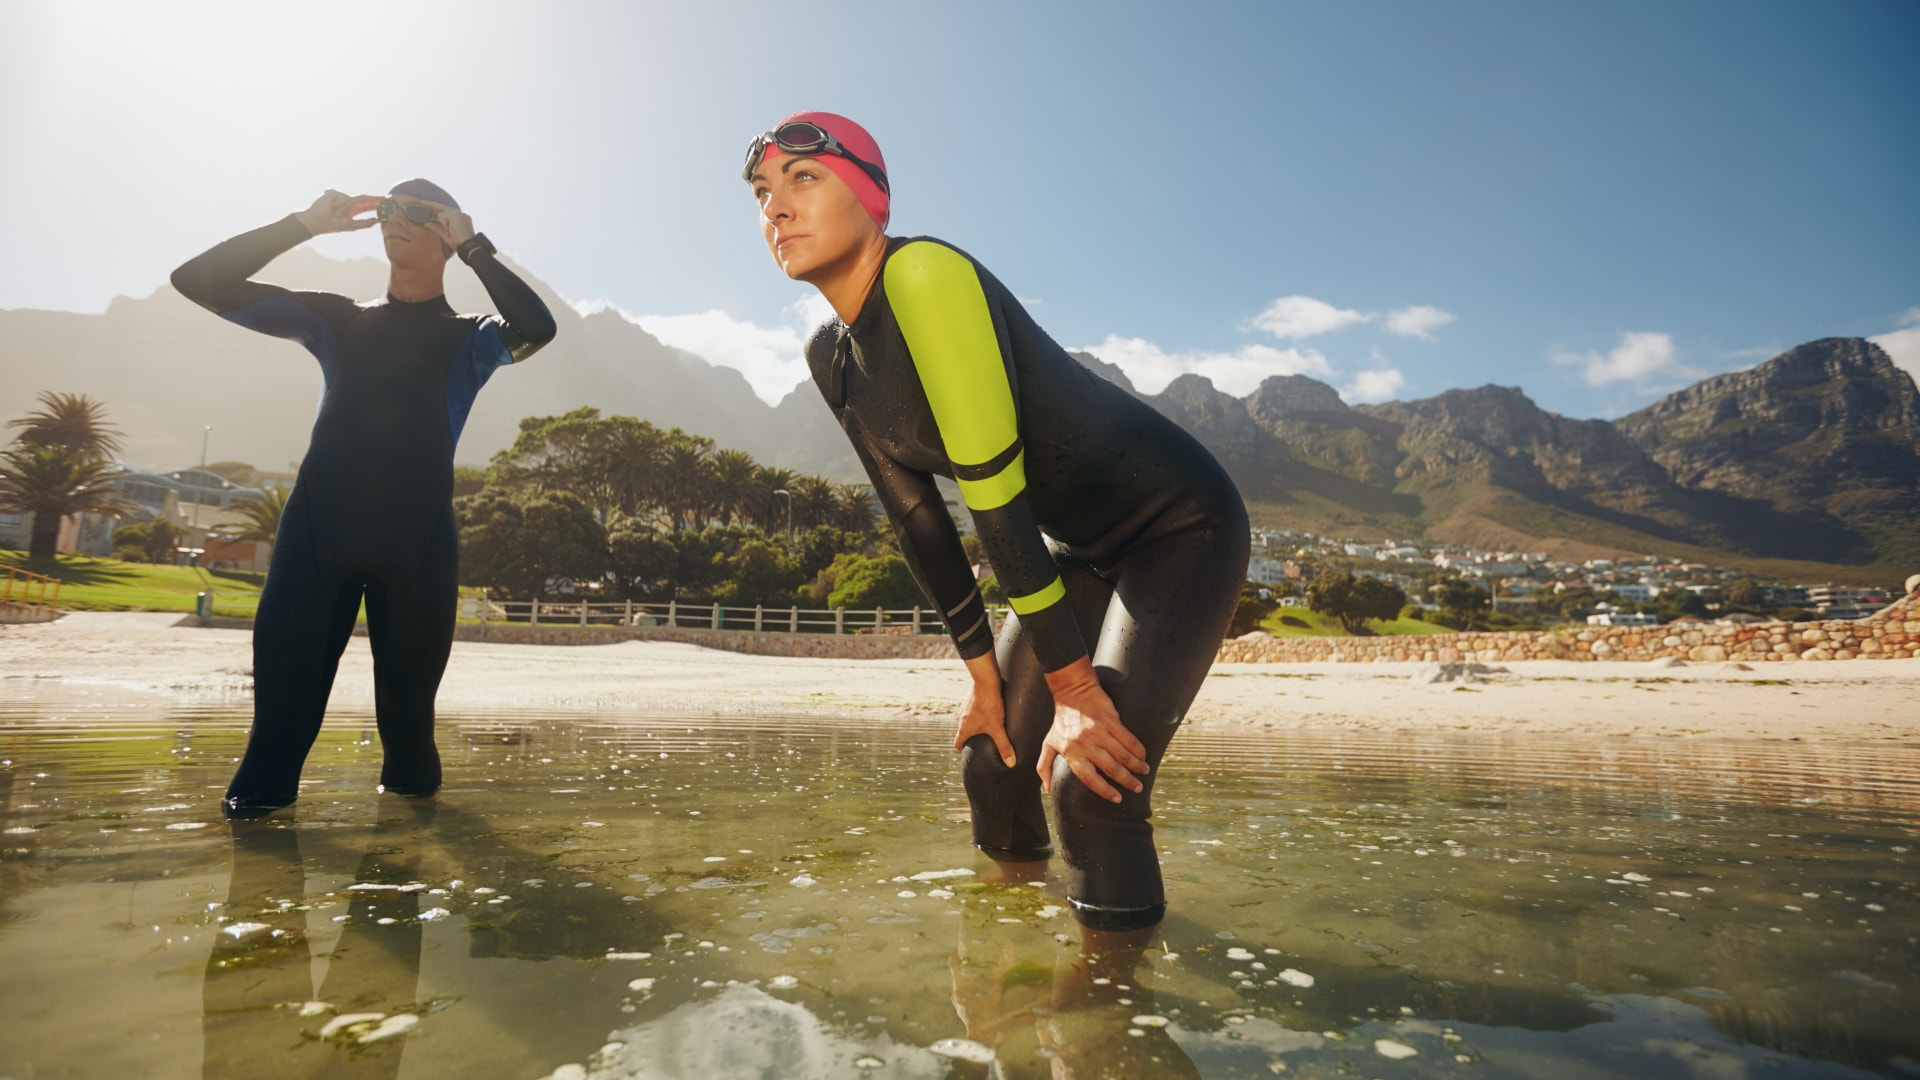 Man and woman participating In a triathlon